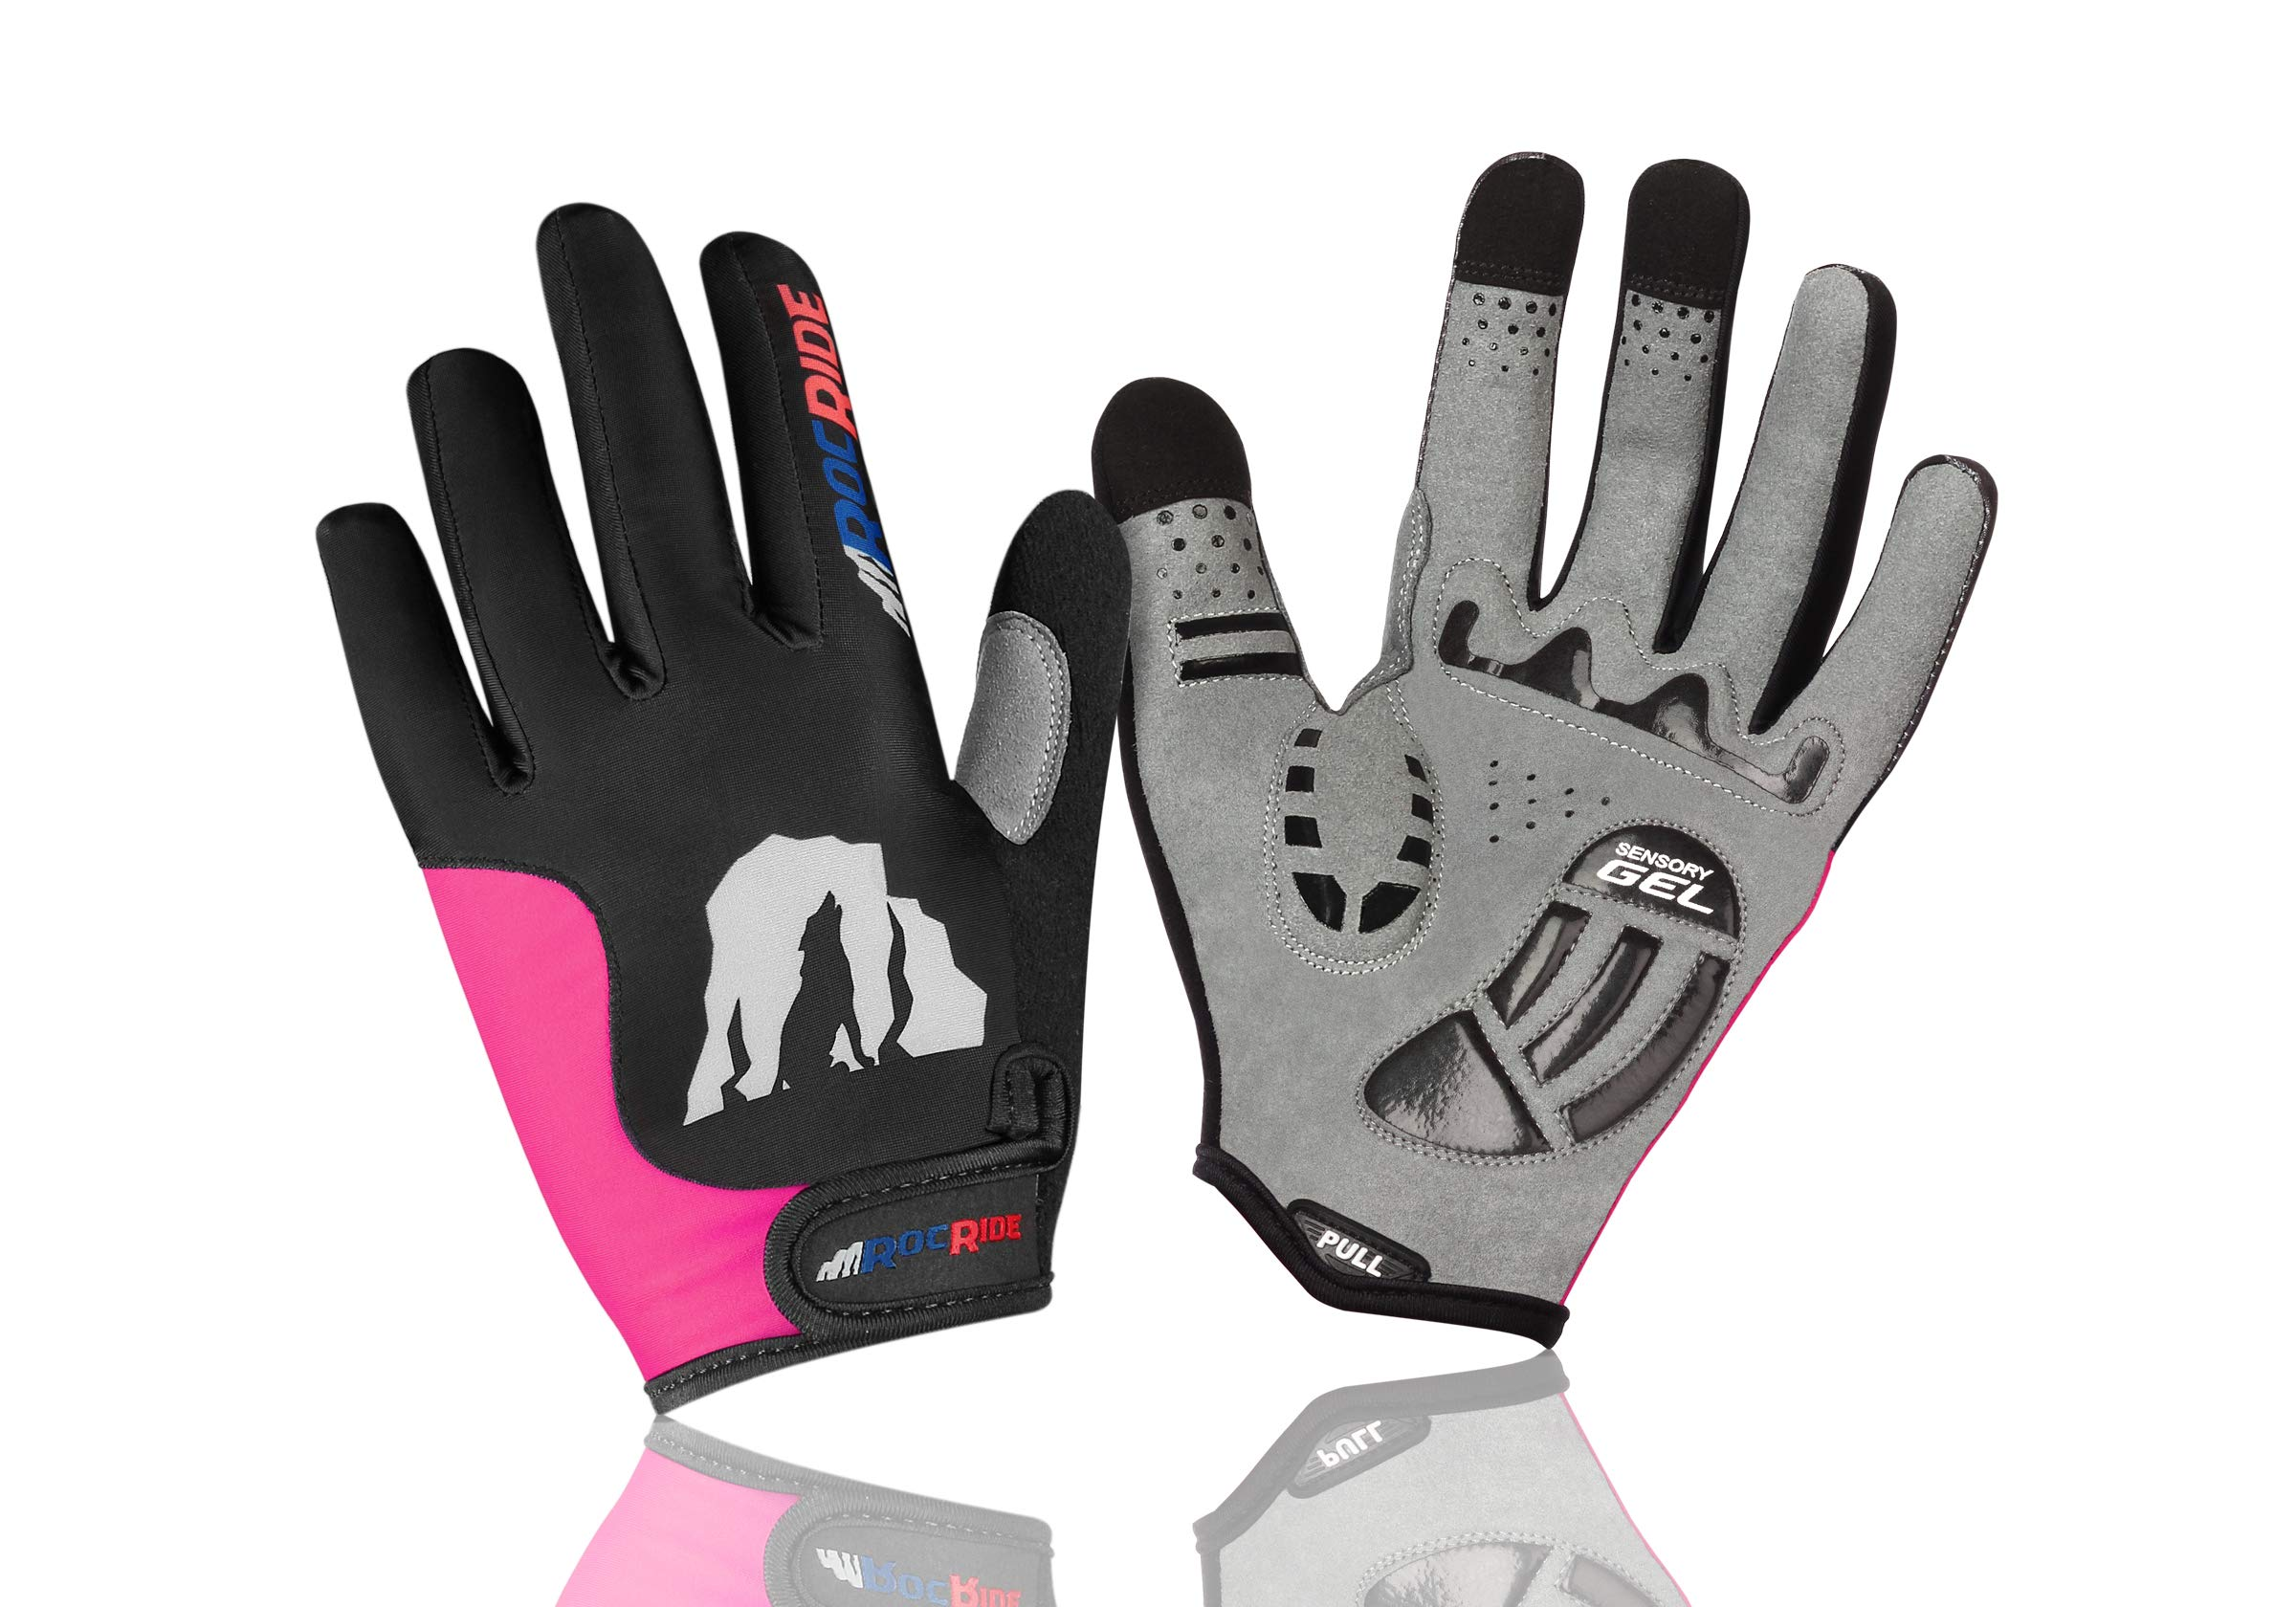 RocRide Cycling Gloves with Gel Padded Protection. Road and Mountain Biking. Full Finger with Screen Compatible Tips Men, Women and Children Sizes